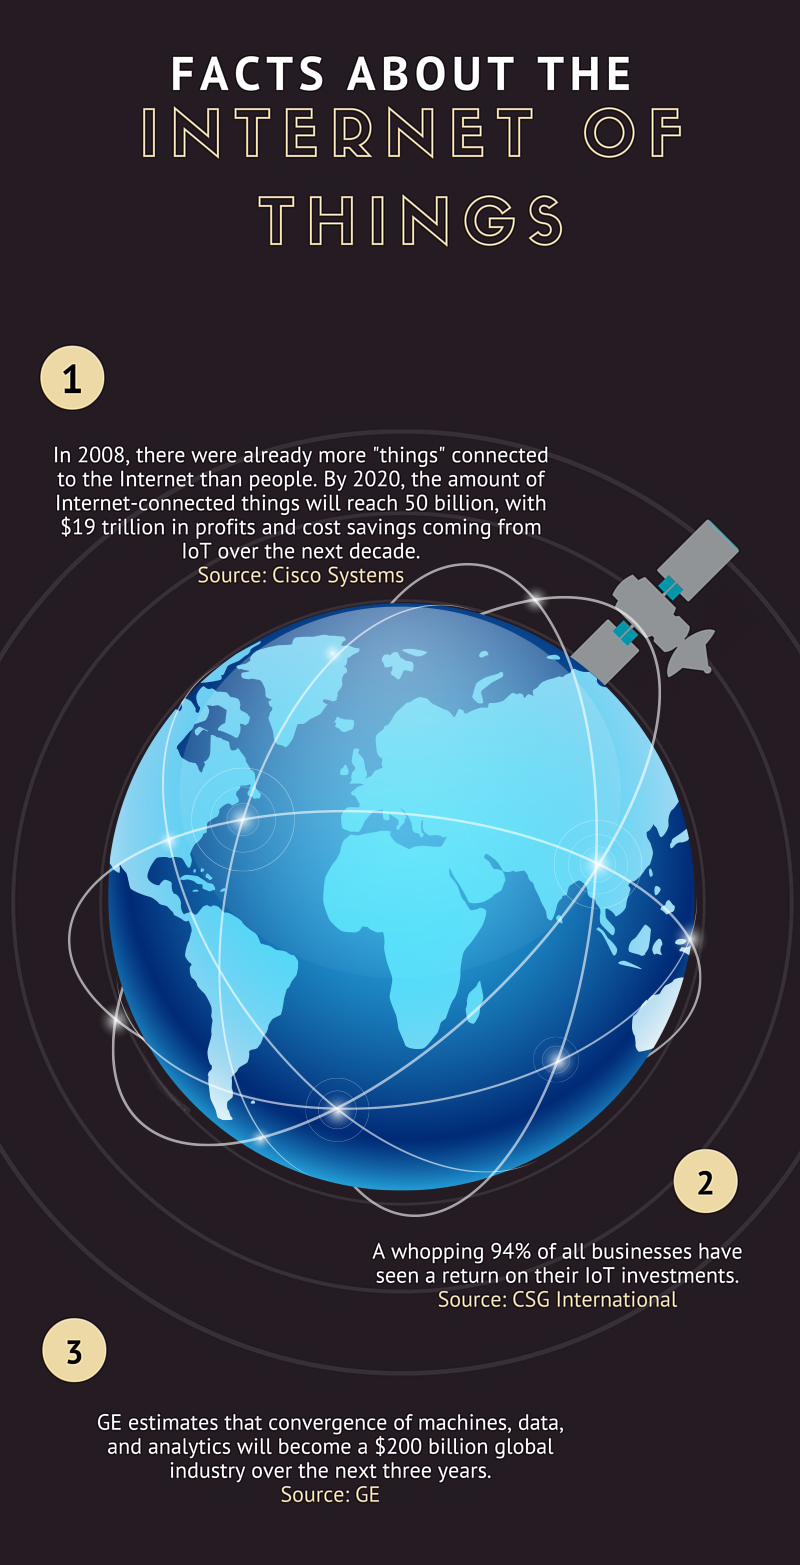 Internet of Things Facts